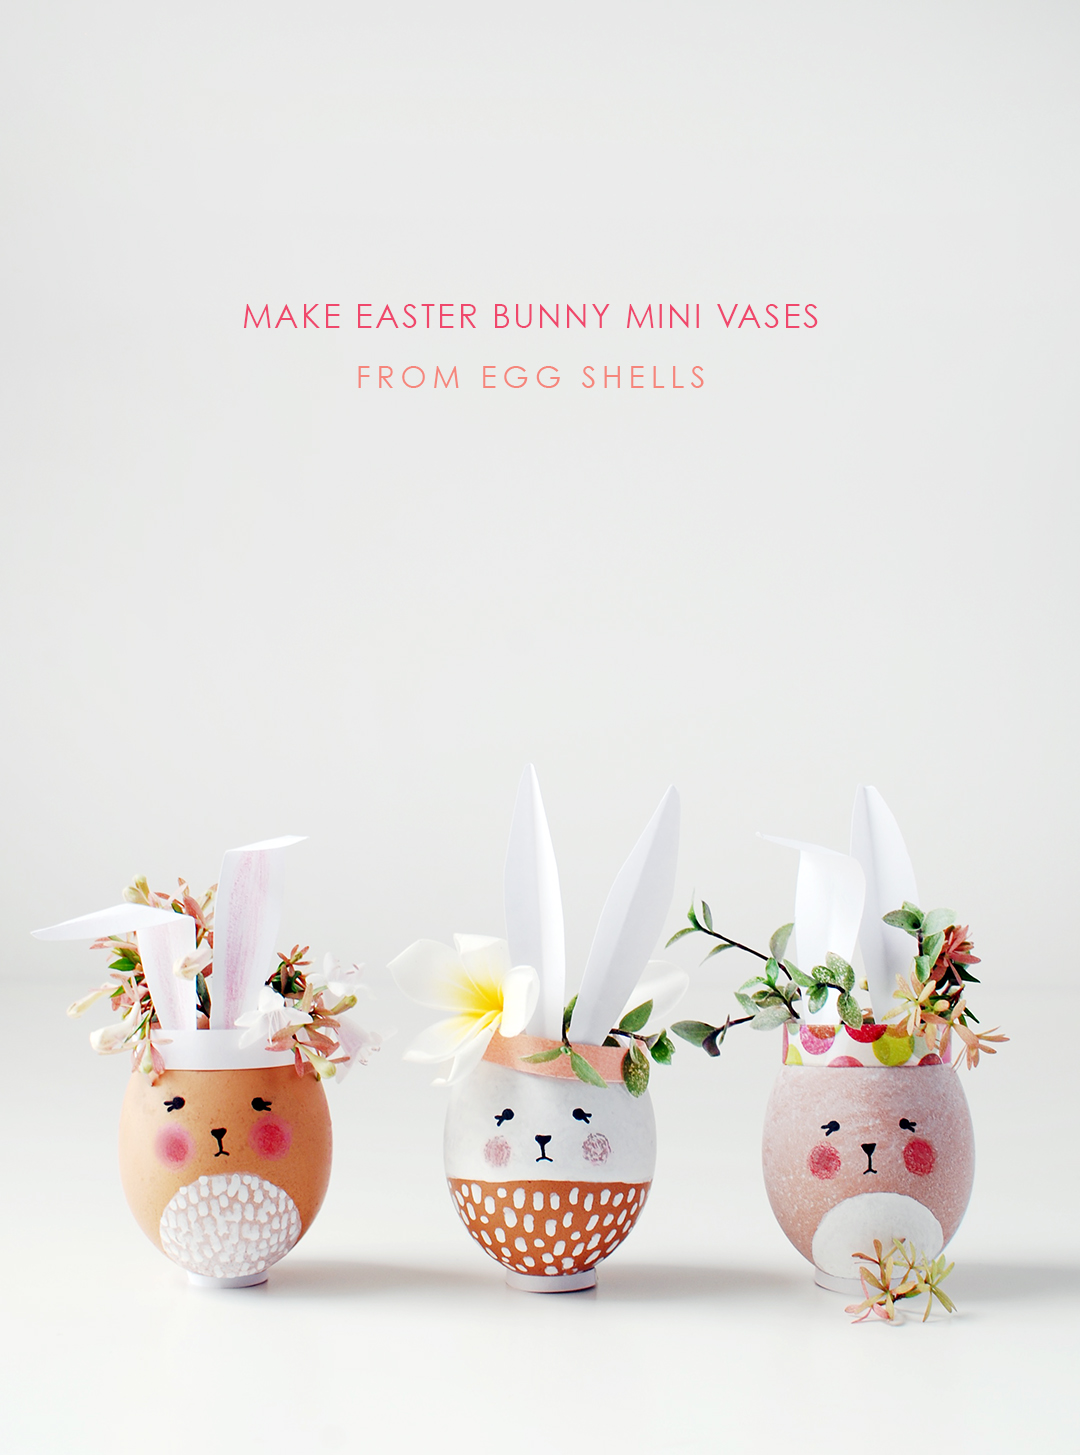 Paint egg shells to make adorable mini Easter Bunny vases for your Easter table. #eastercraft